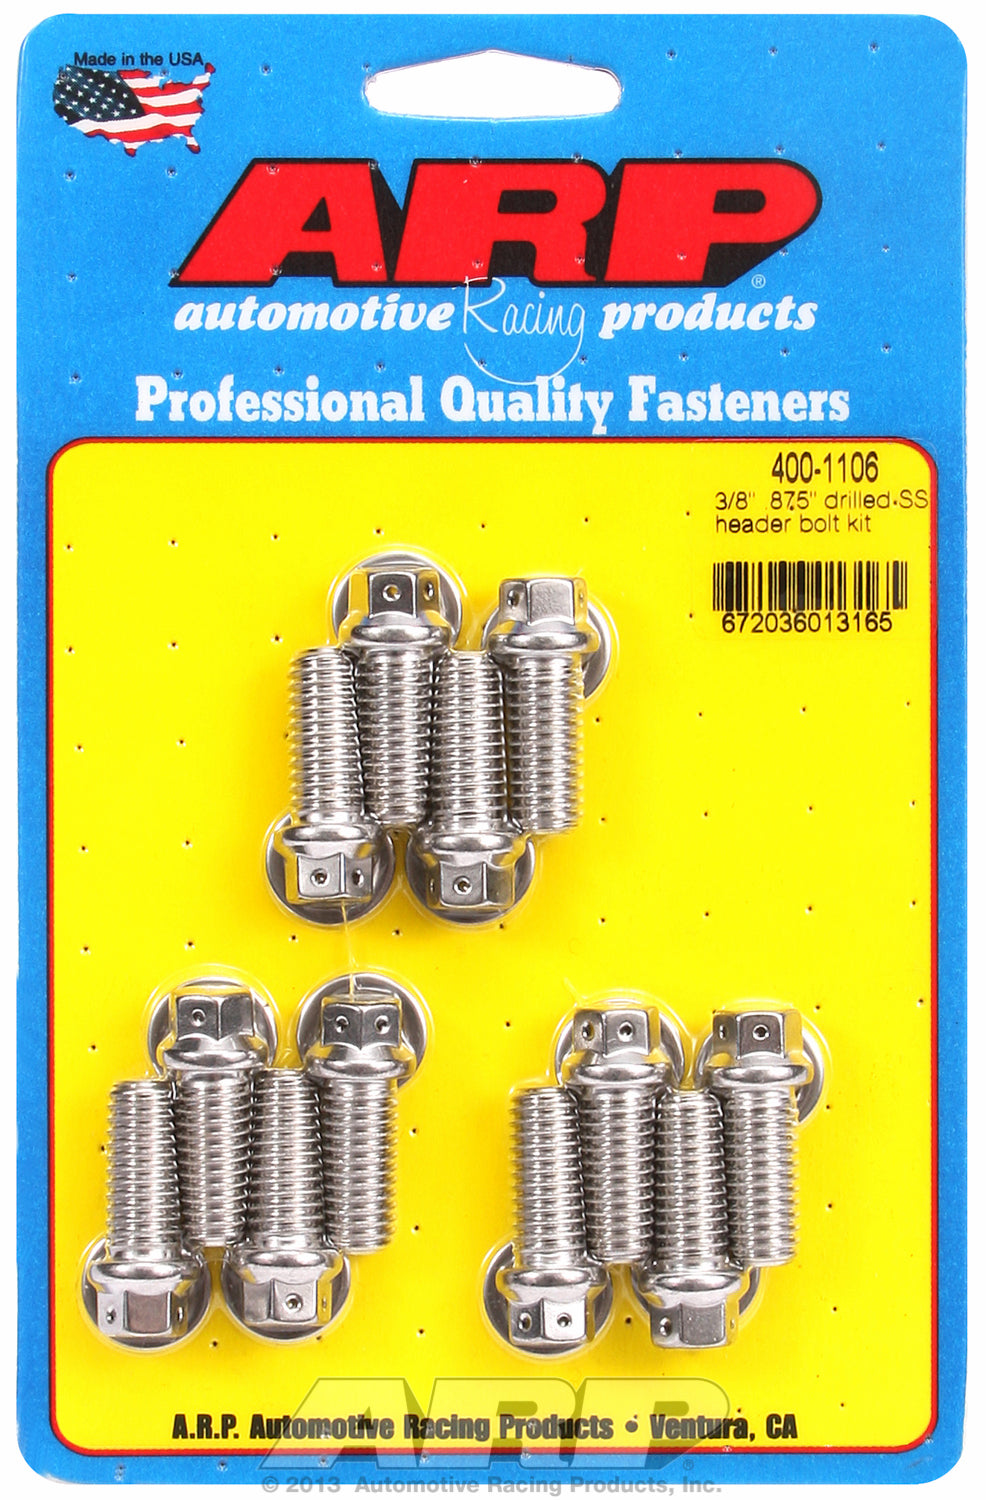 Header Bolt Kit For Universal Bolt kit, drilled, uses 3/8˝ socket Stainless Hex Head